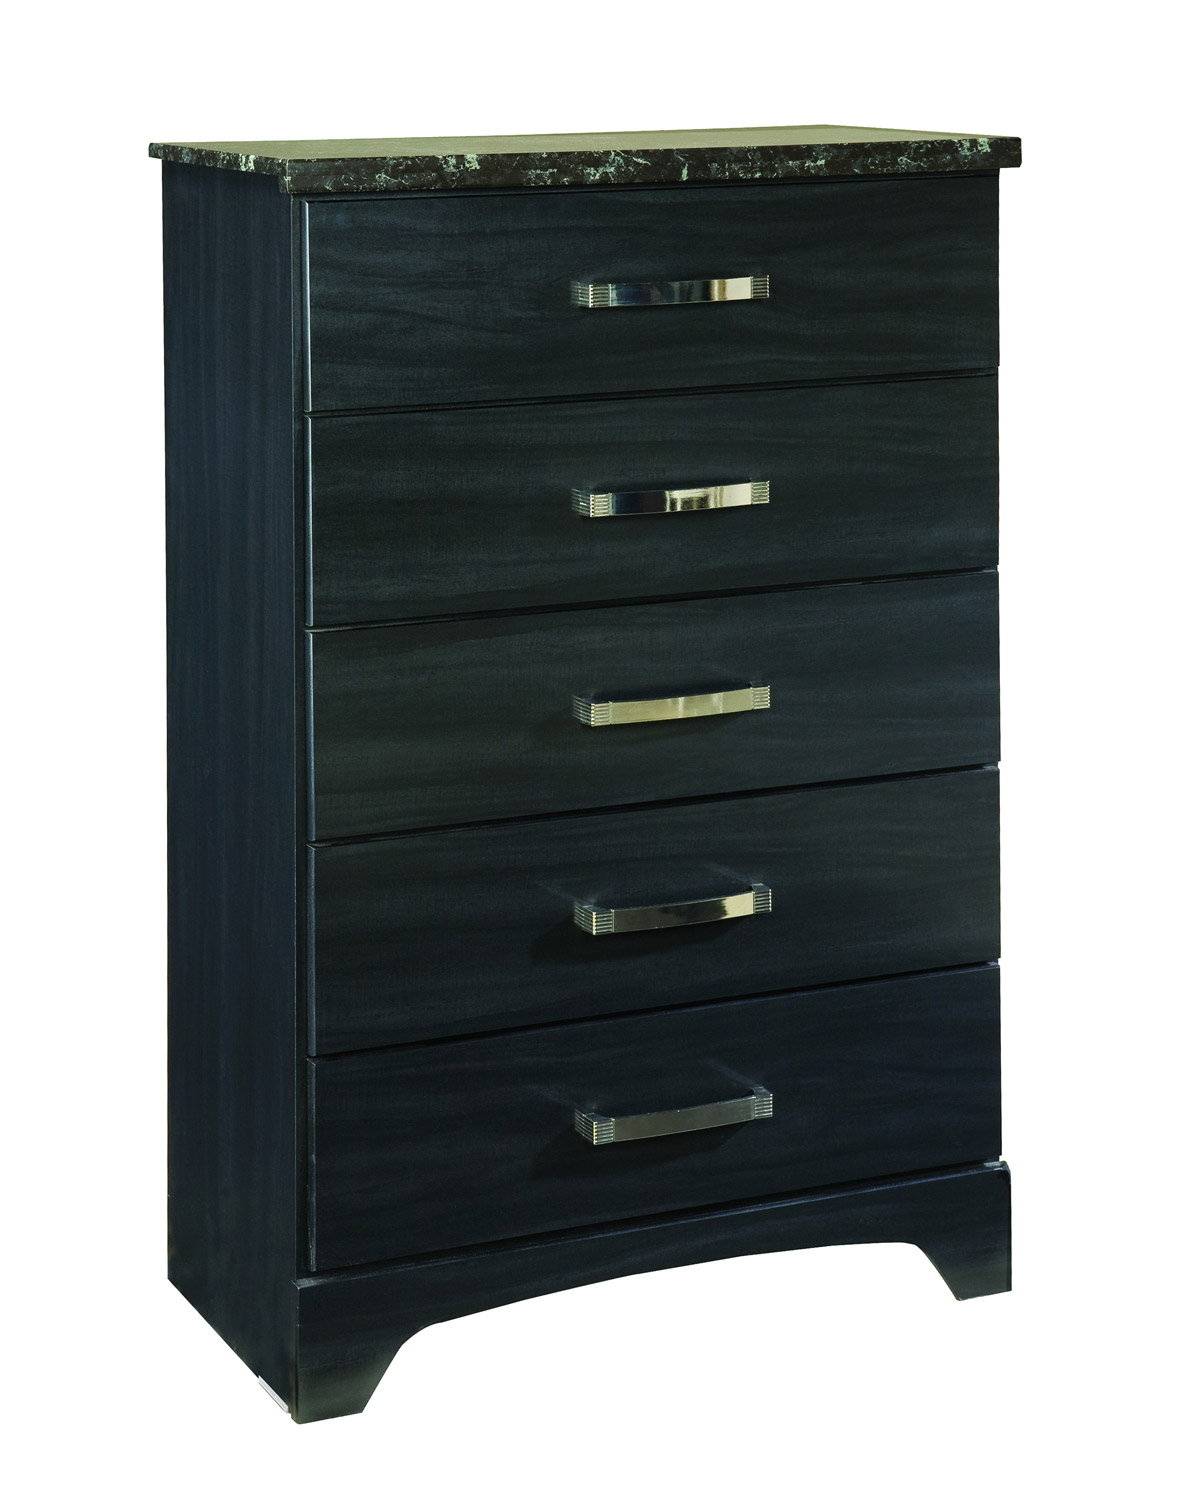 Global Furniture USA Olivia Chest - Engineered Wood/Oak Wood Graining Laminate - Black